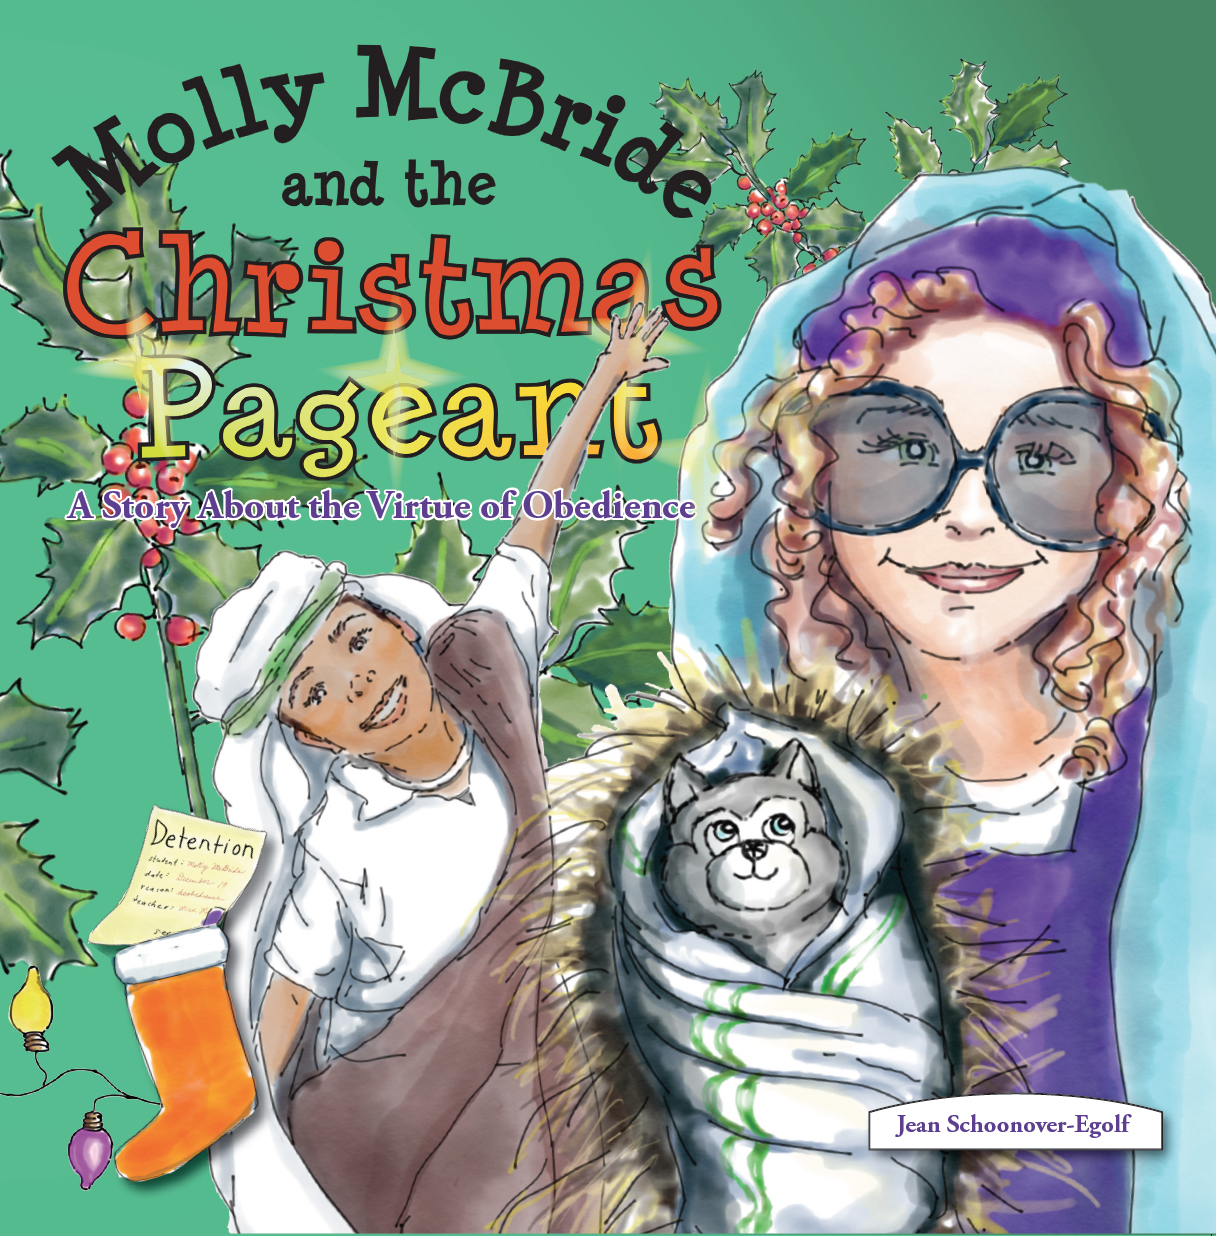 https://www.amazon.com/dp/1733493506/ref=sr_1_1?keywords=molly+McBride+and+the+Christmas+Pageant&qid=1572118114&s=books&sr=1-1